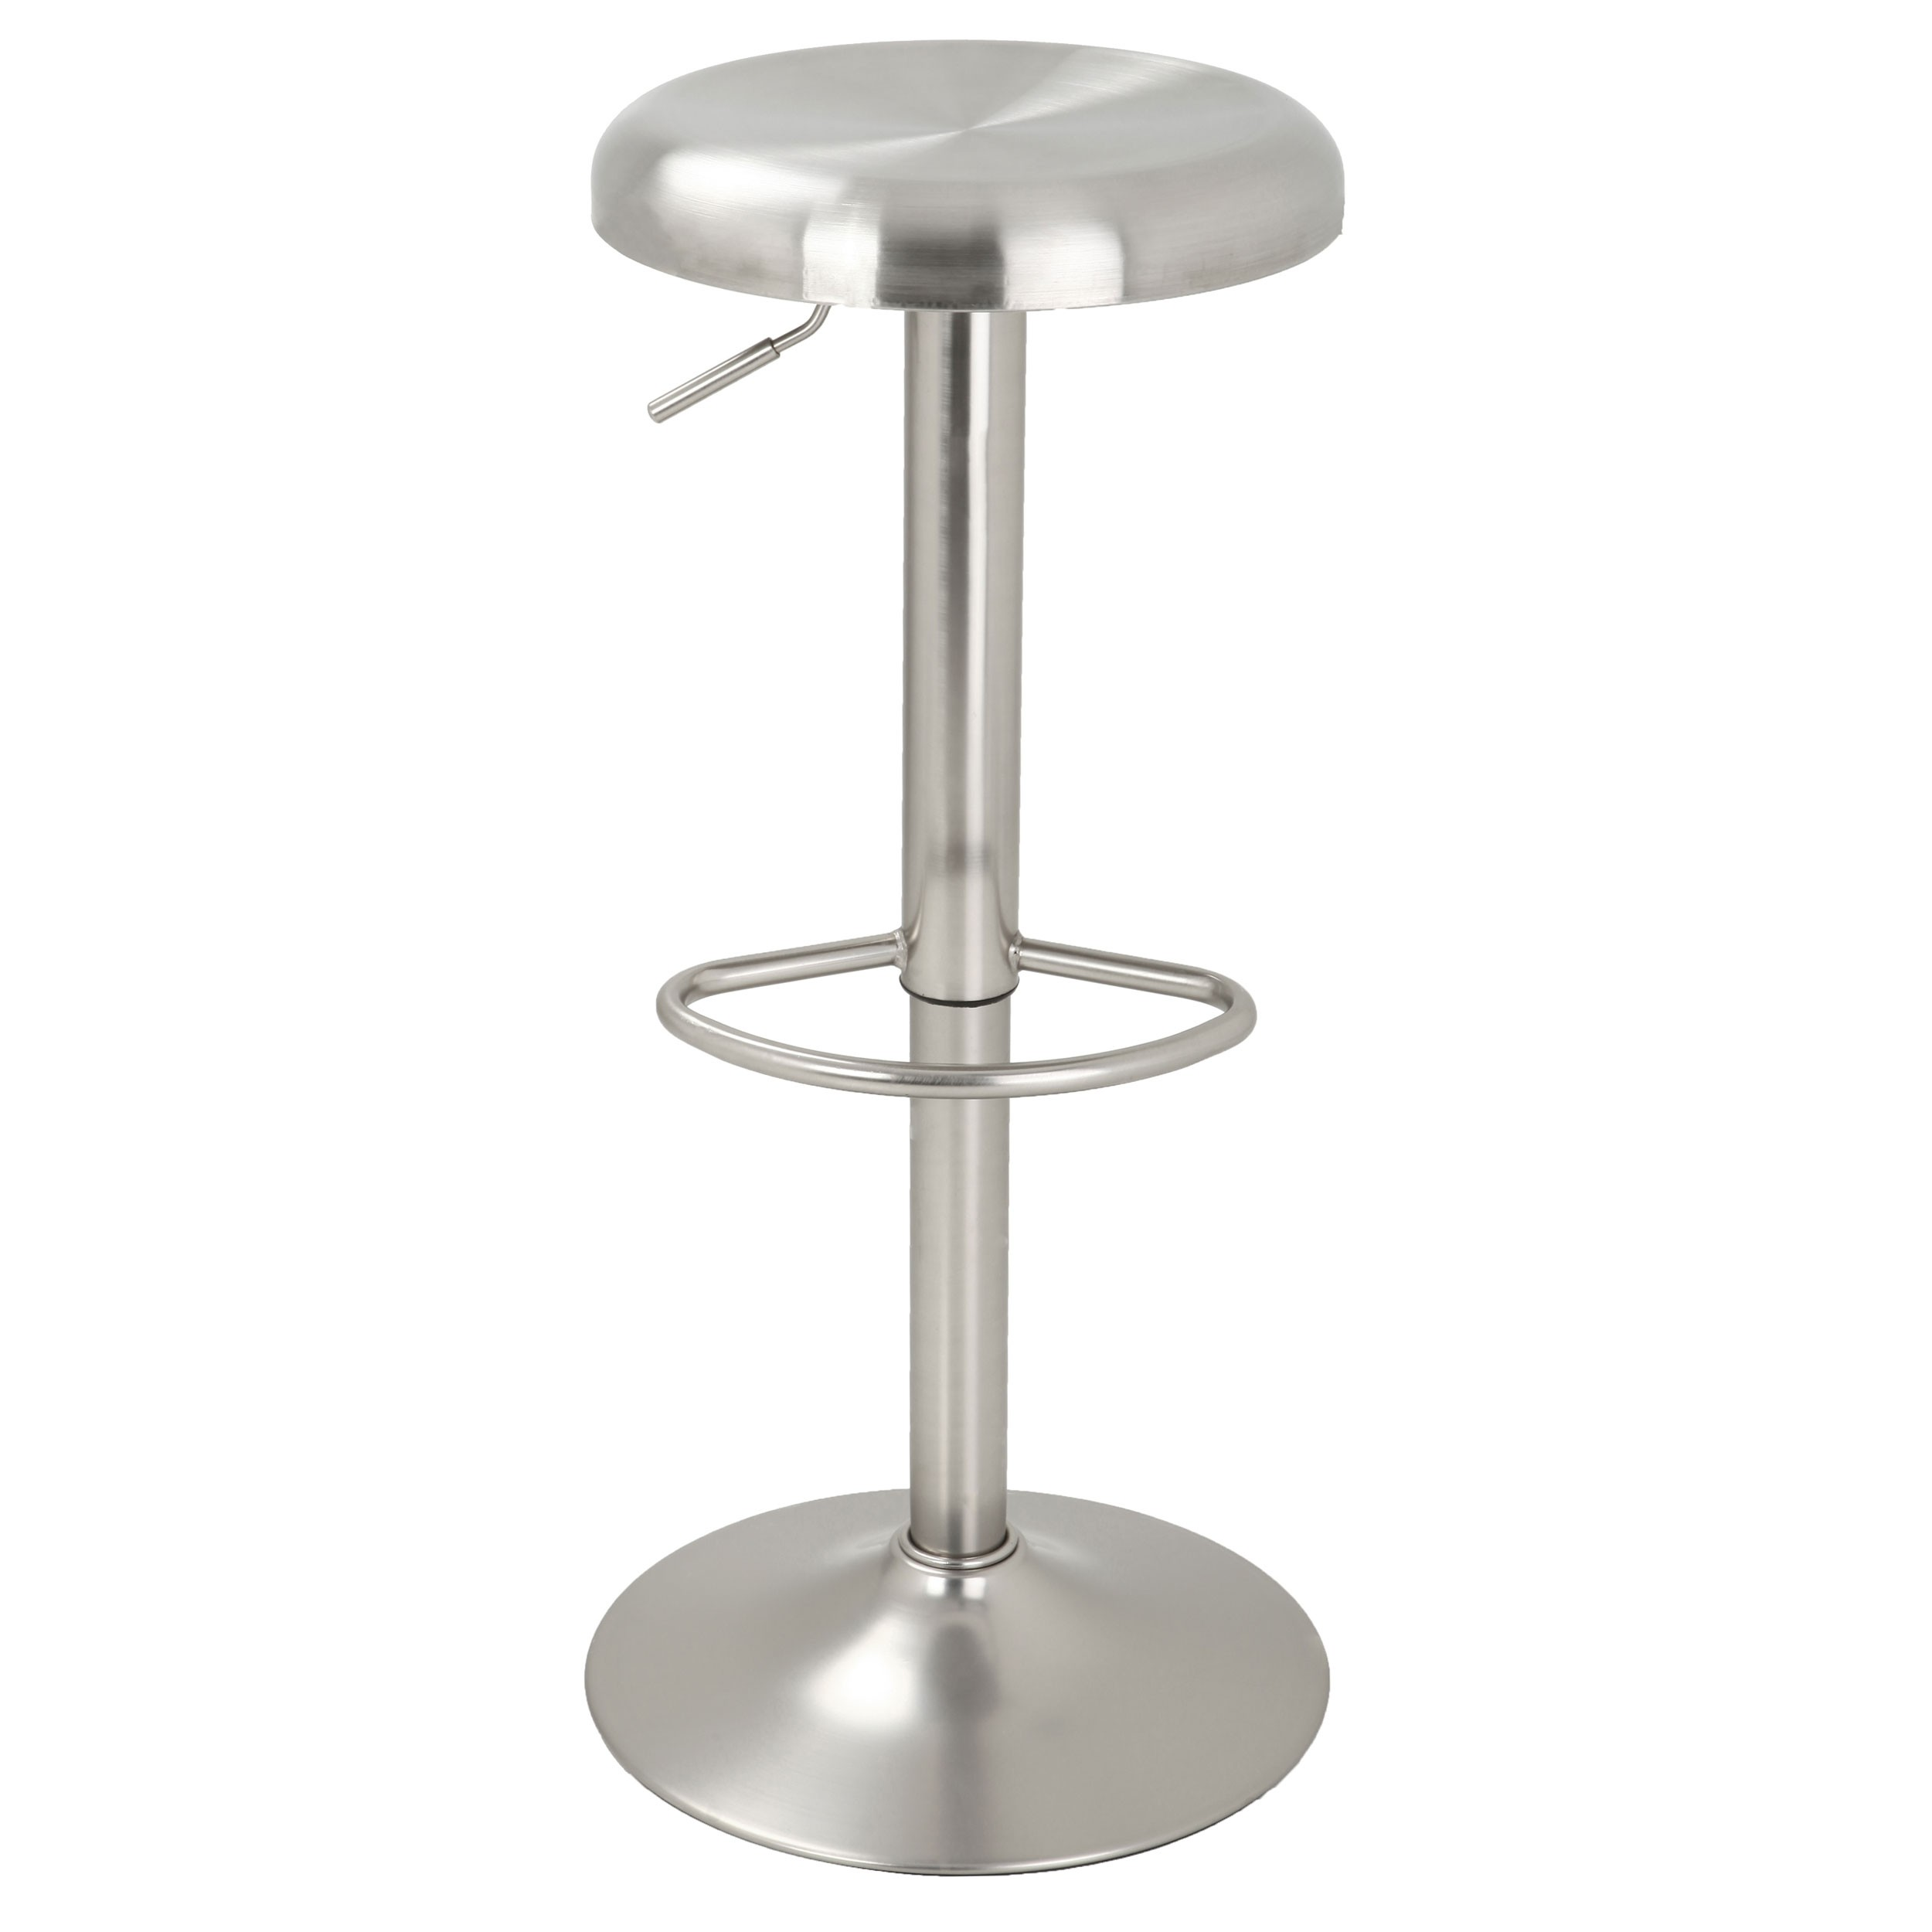 tabouret de bar silver installez nos tabourets de bar silver prix discount rdv d co. Black Bedroom Furniture Sets. Home Design Ideas